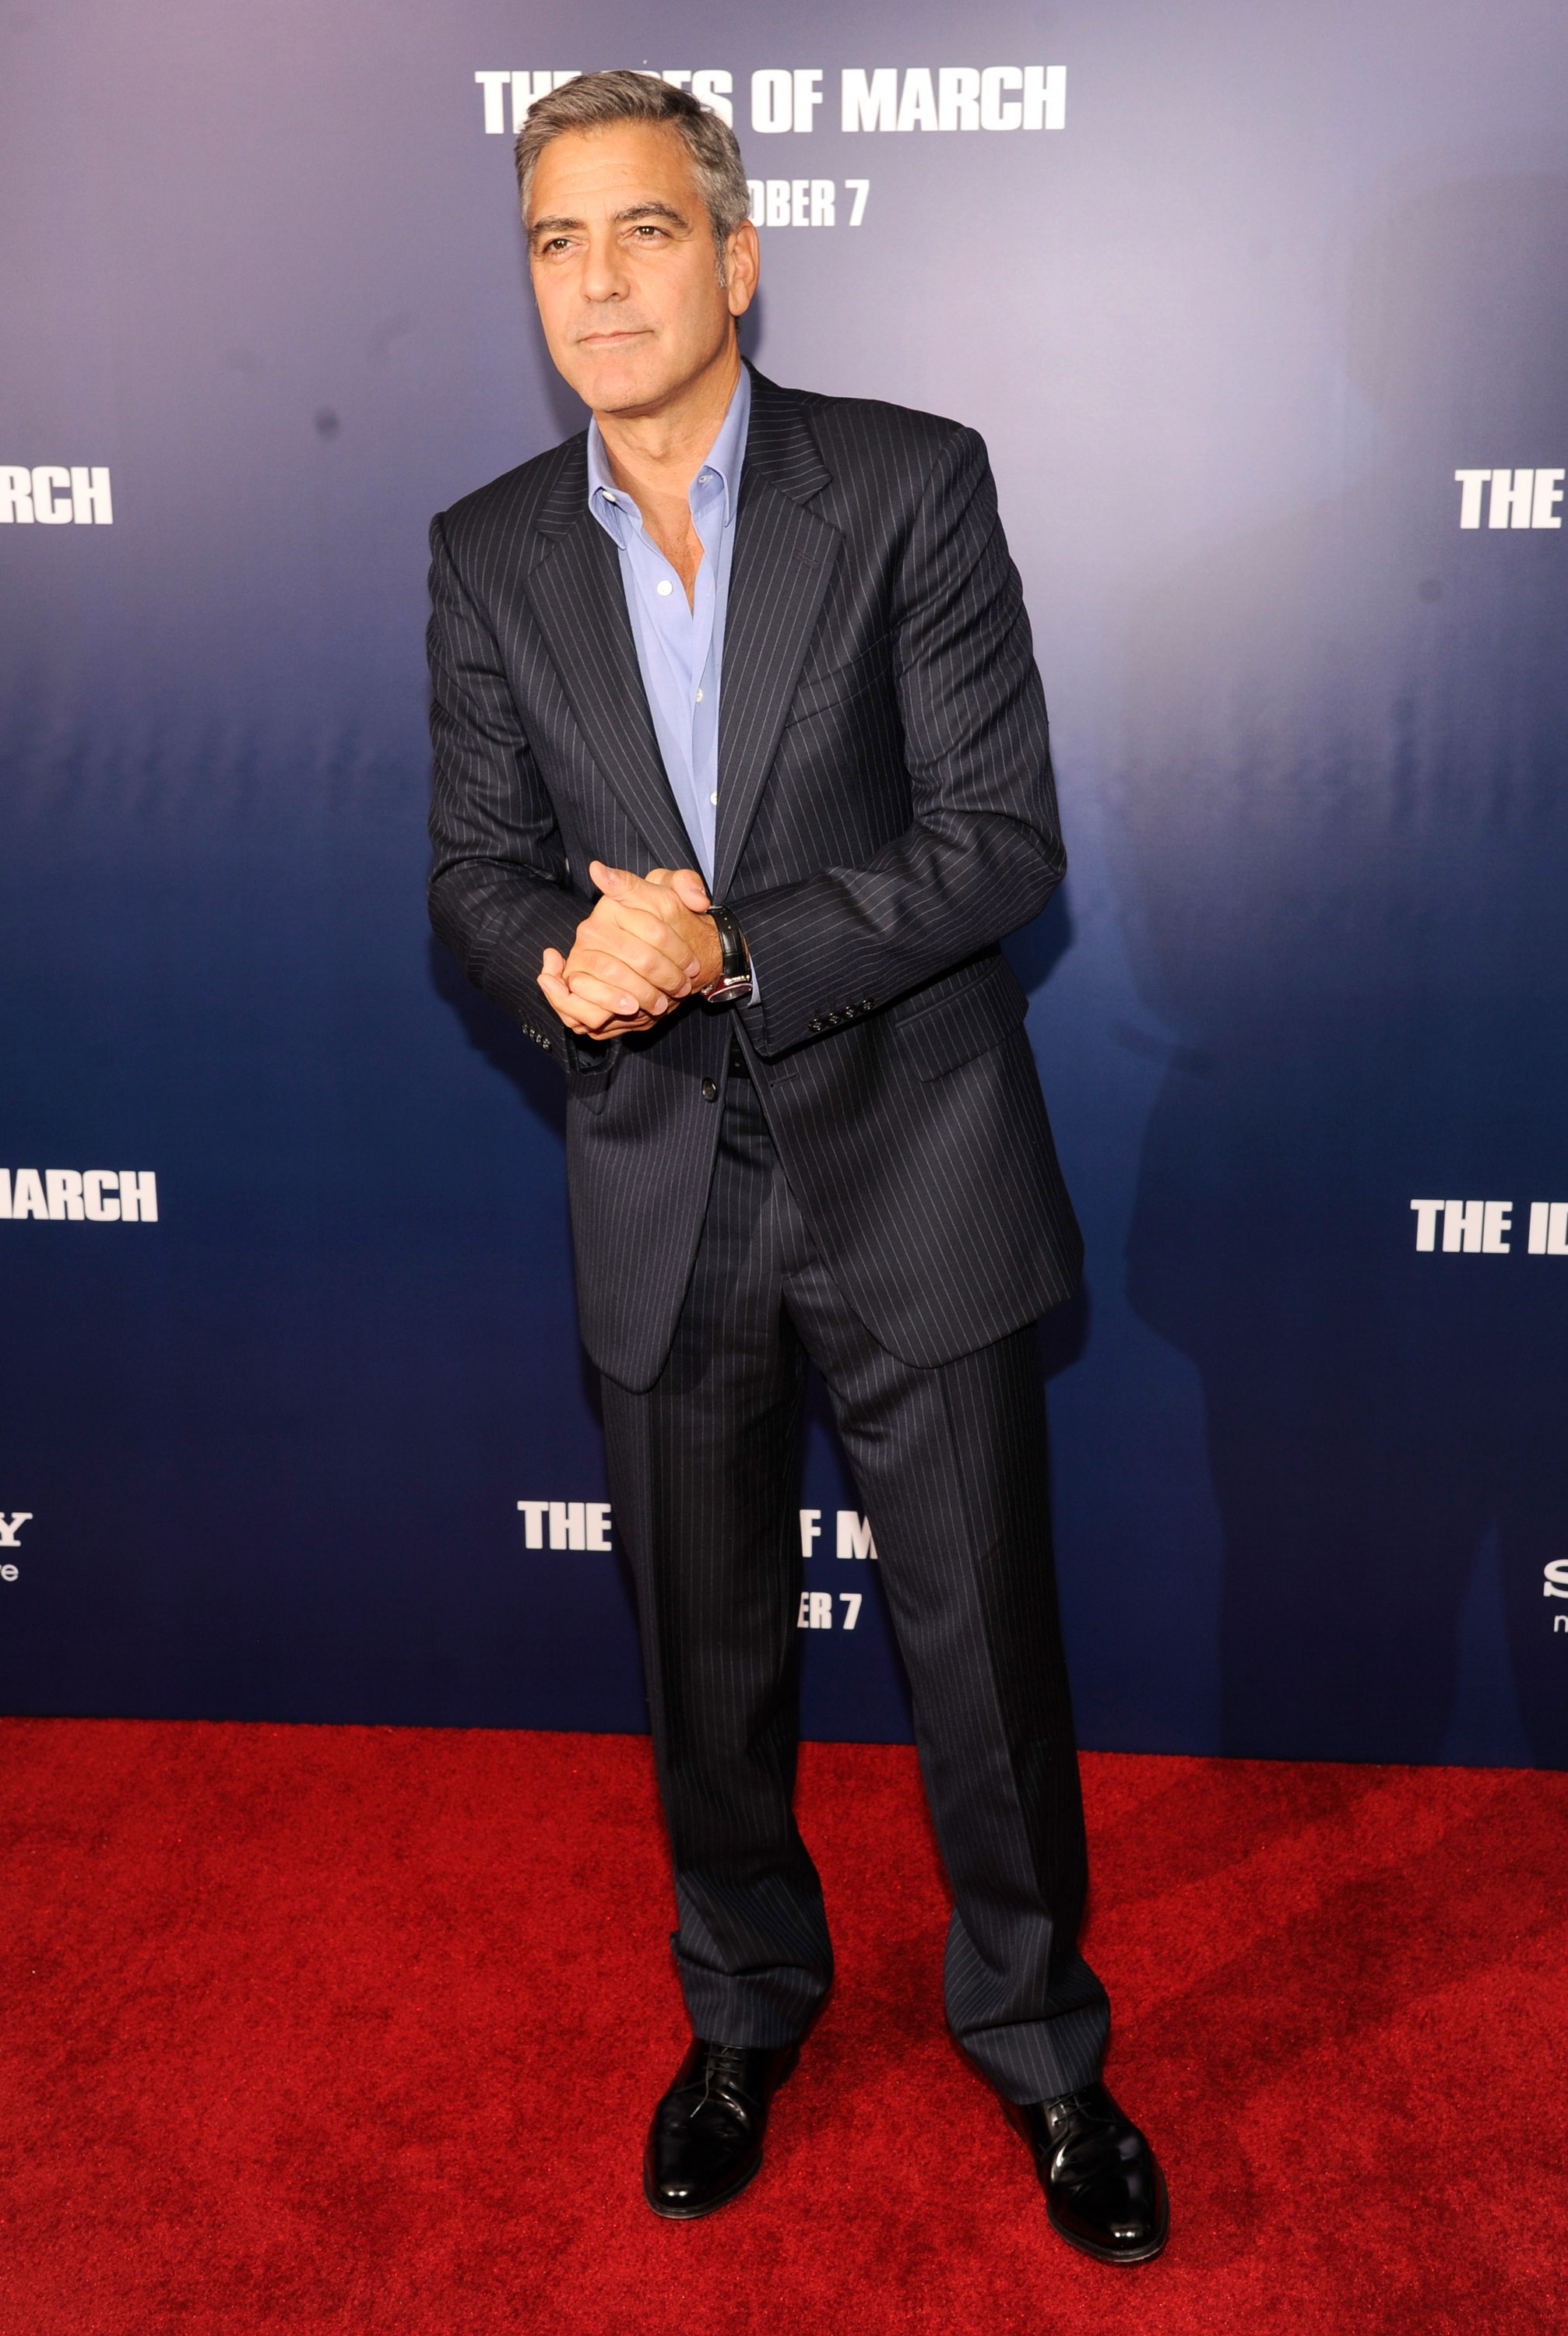 George clooney wore a crisp blue suit at the premiere of the ides of